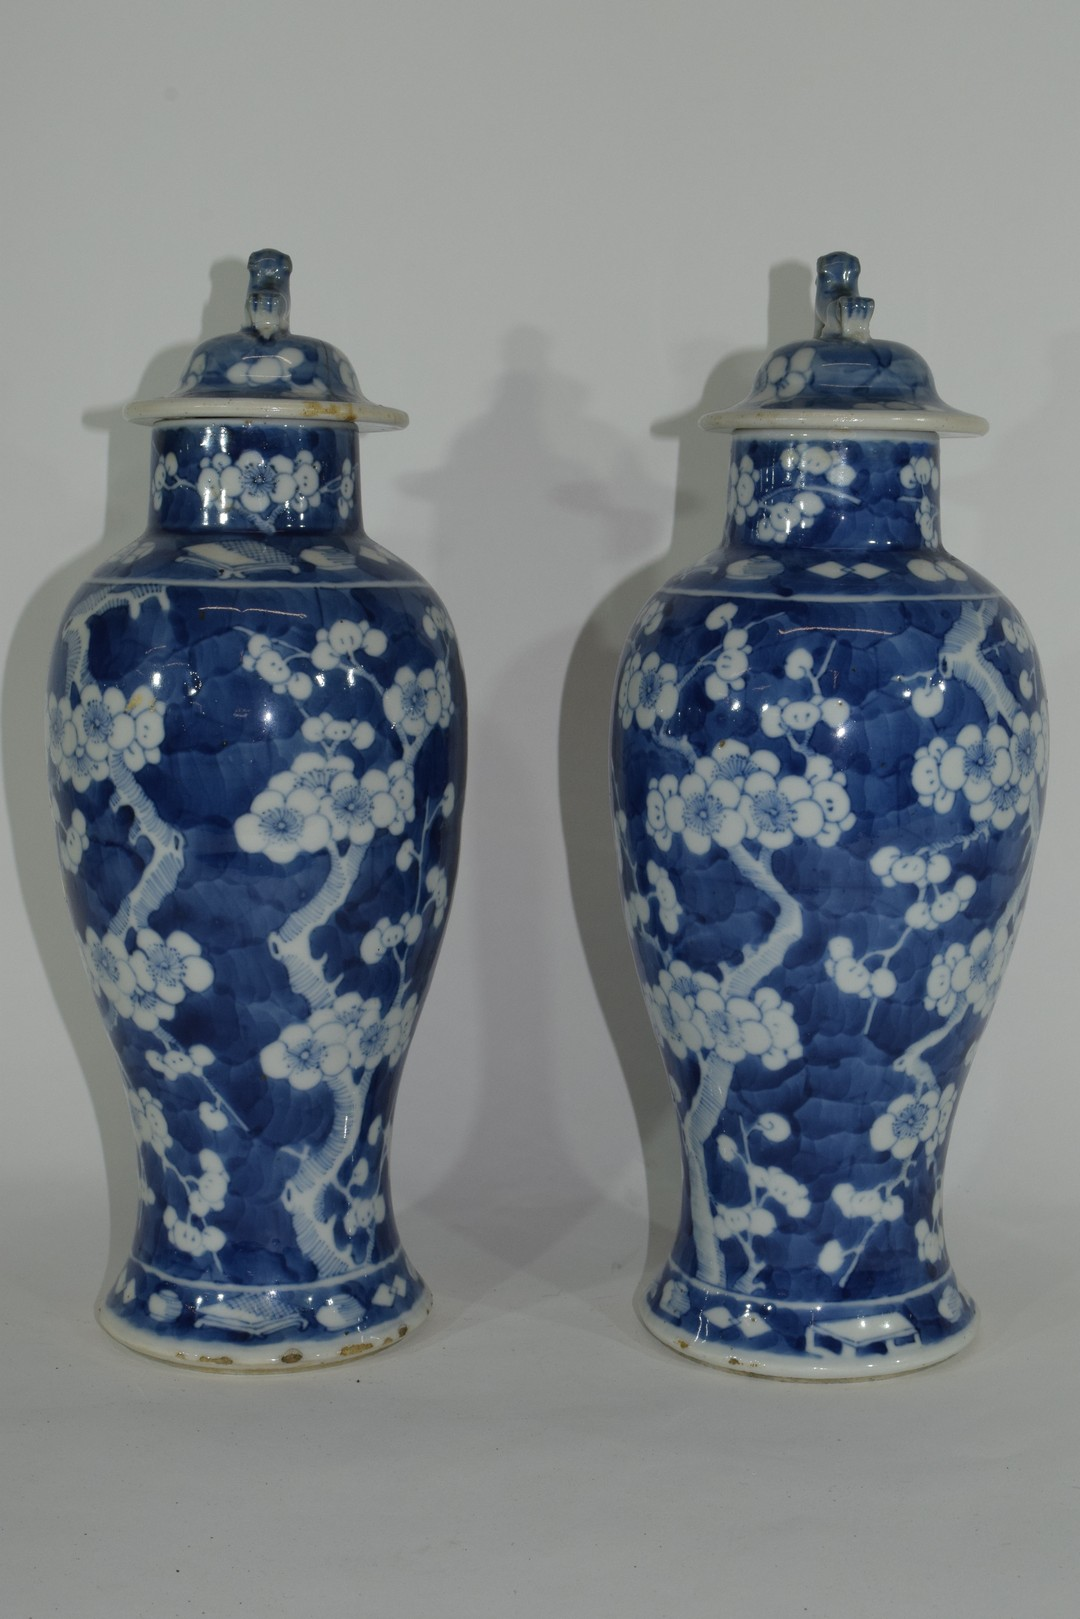 Pair of 19th century Chinese porcelain vases and covers - Image 2 of 9